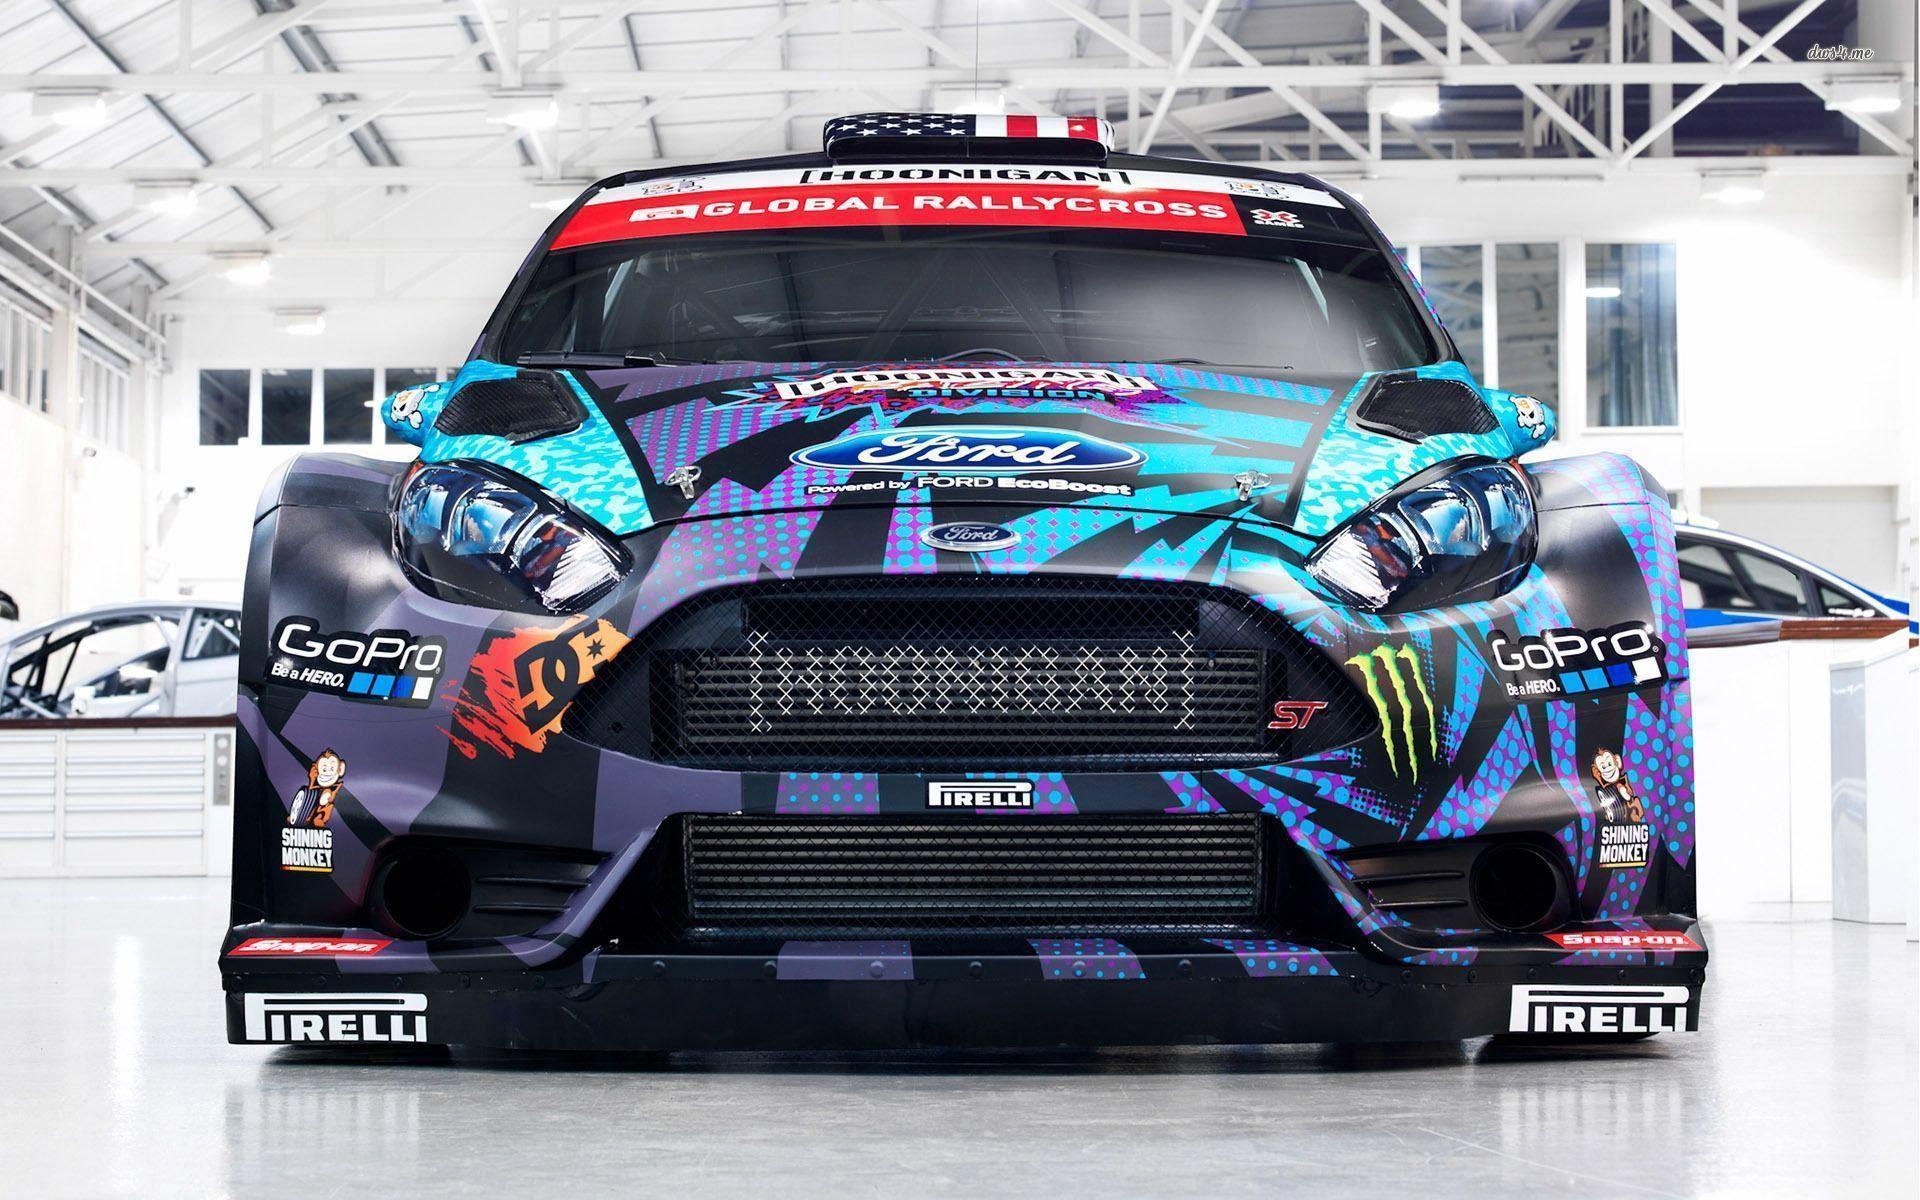 wallpapers ken block 2015 wallpaper cave. Cars Review. Best American Auto & Cars Review